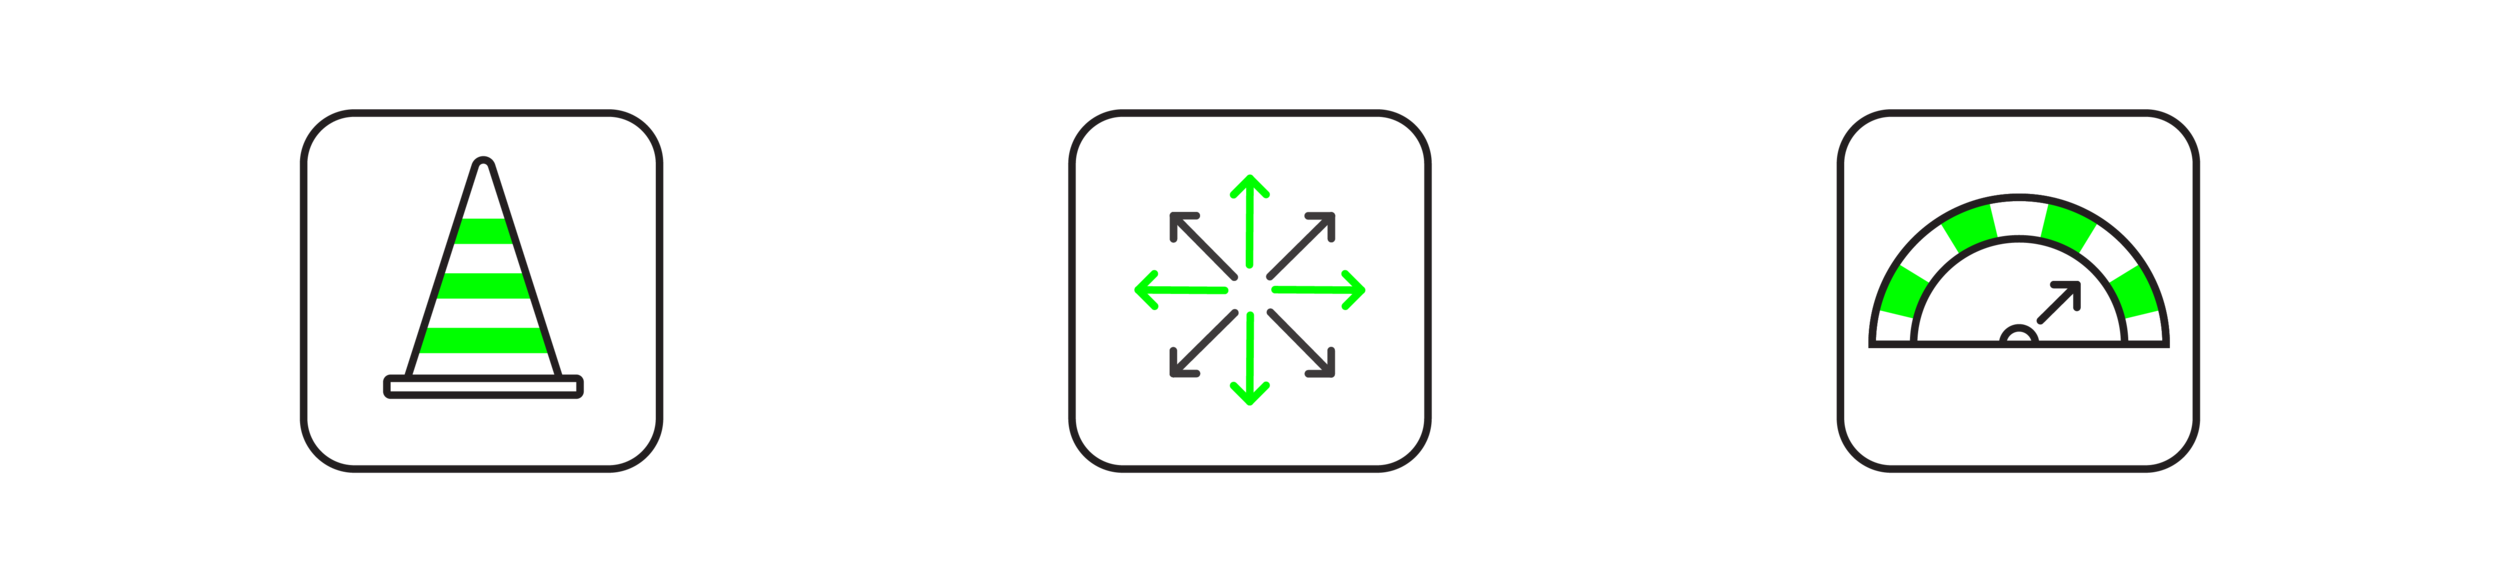 Safe_Scalable_Efficient_Icons